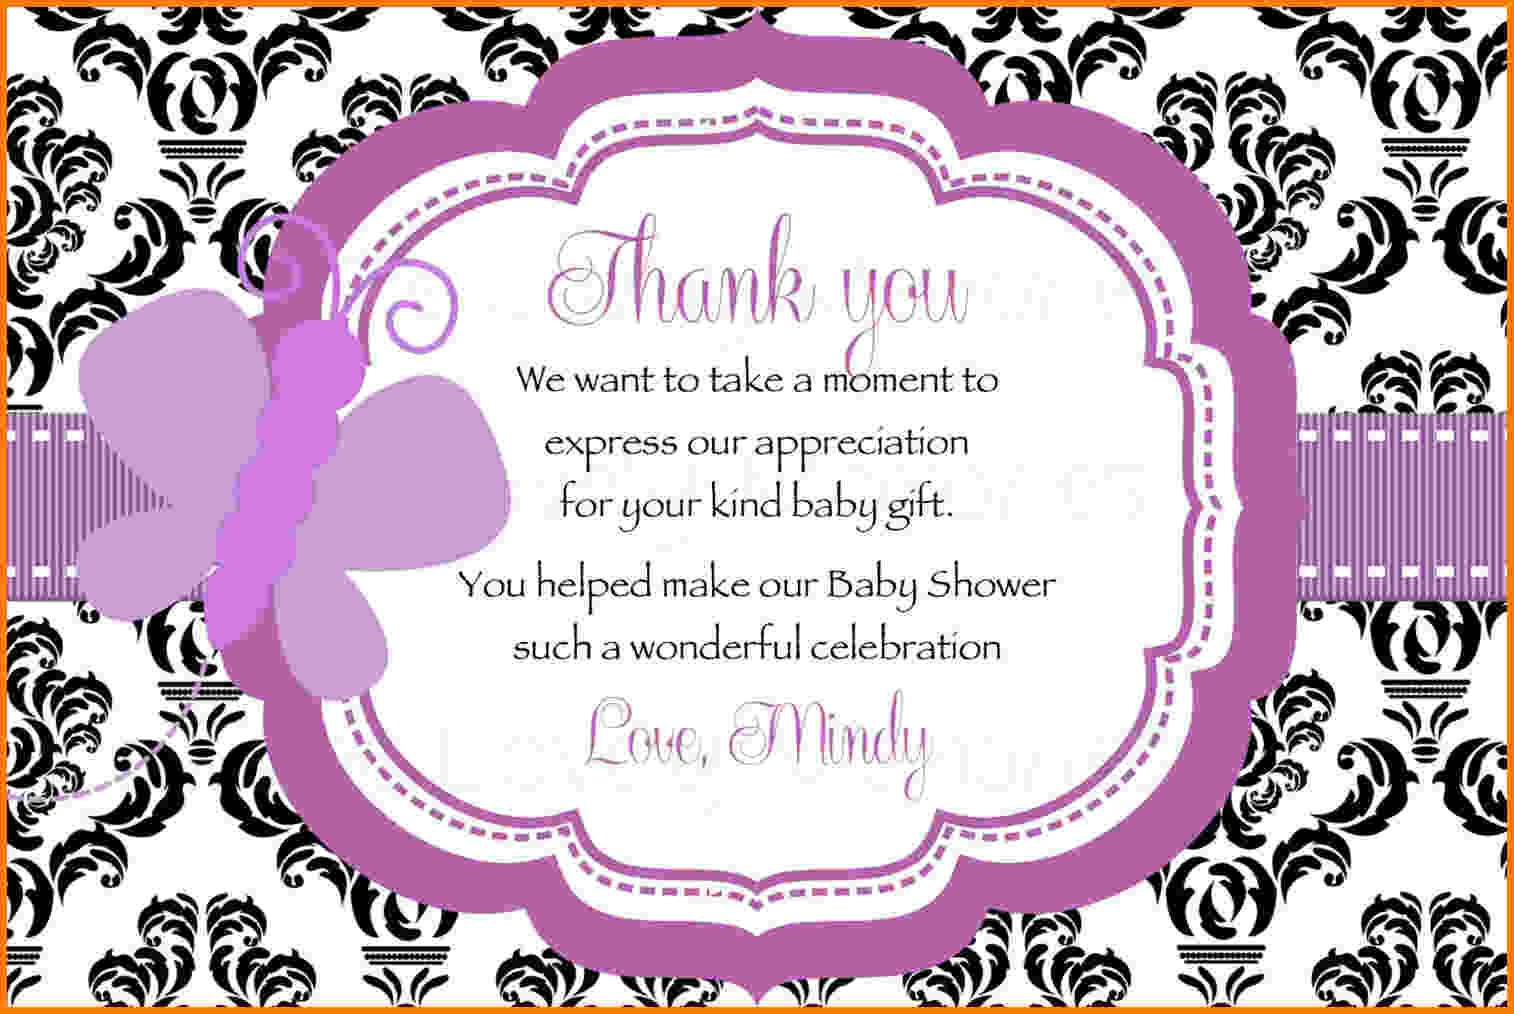 Full Size of Baby Shower:36+ Retro Baby Shower Thank You Wording Image Concepts 3 Baby Shower Thank You Cards Wording Card Authorization 2017 3 Baby Shower Thank You Cards Wording